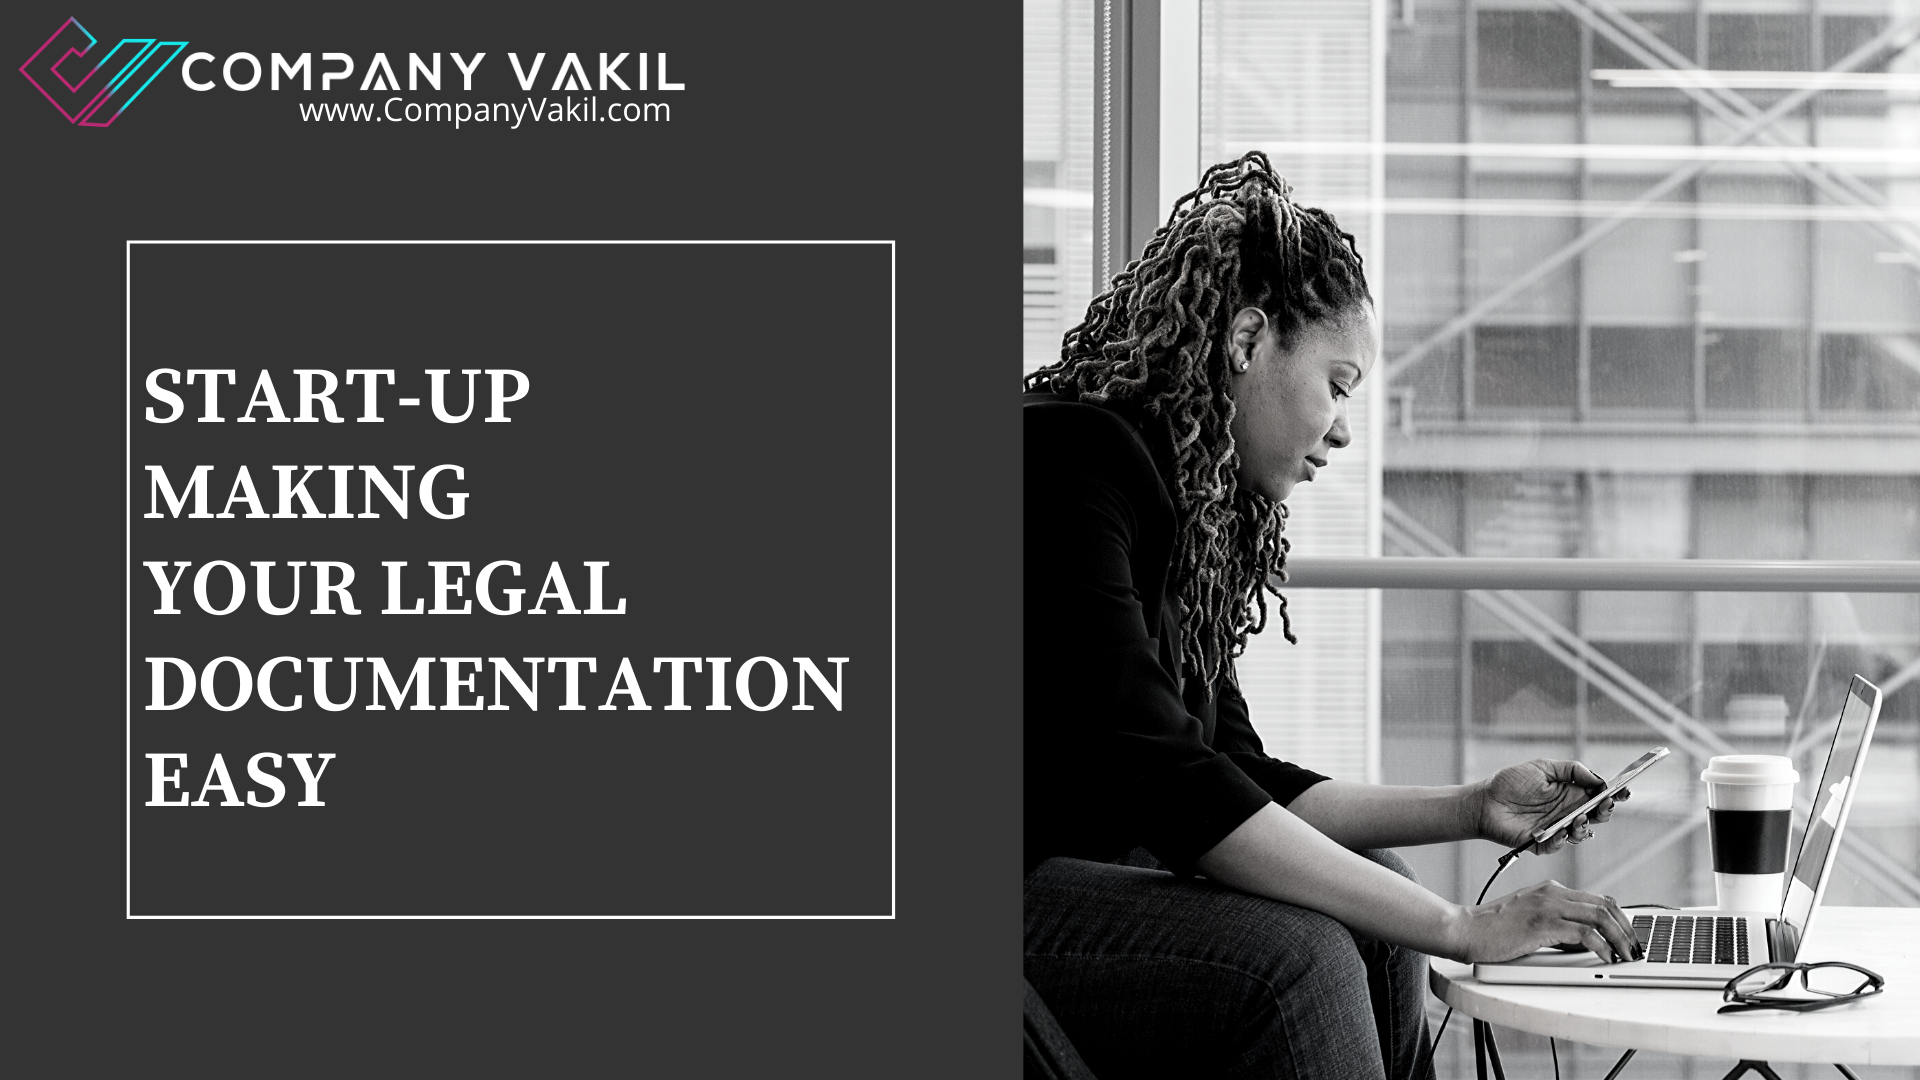 How Terms Of Service, Founder's Agreement & Employment Contracts Can Help Businesses – Company Vakil 1